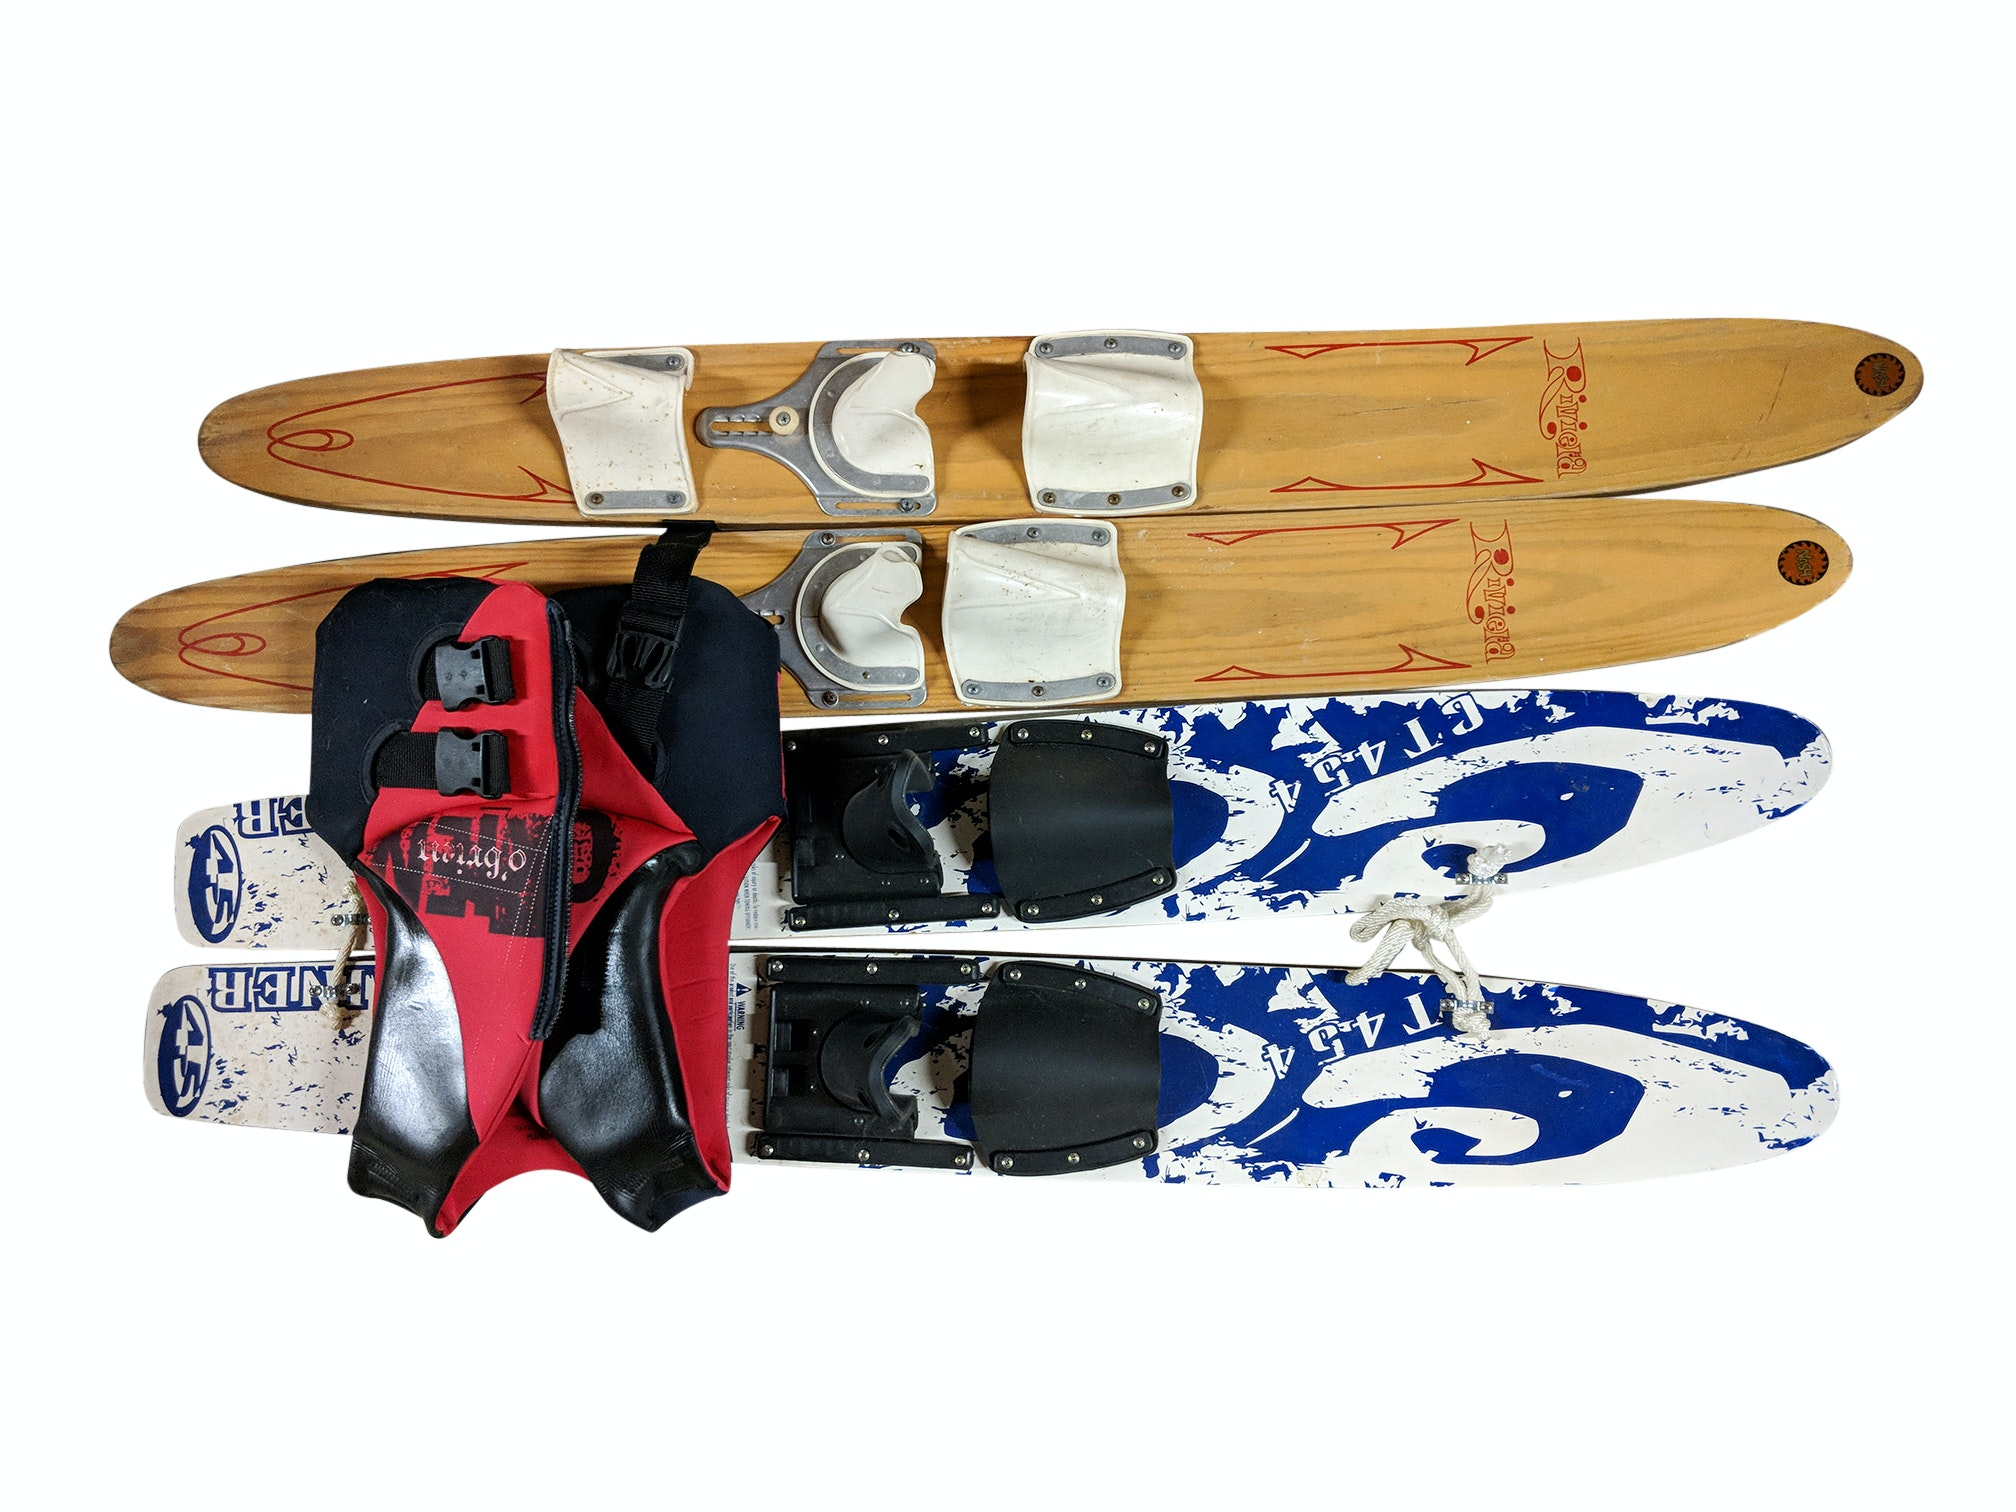 Beginner Trainer Skis, Trainer Kneeboard, Ski Jackets and Wooden Water Skis